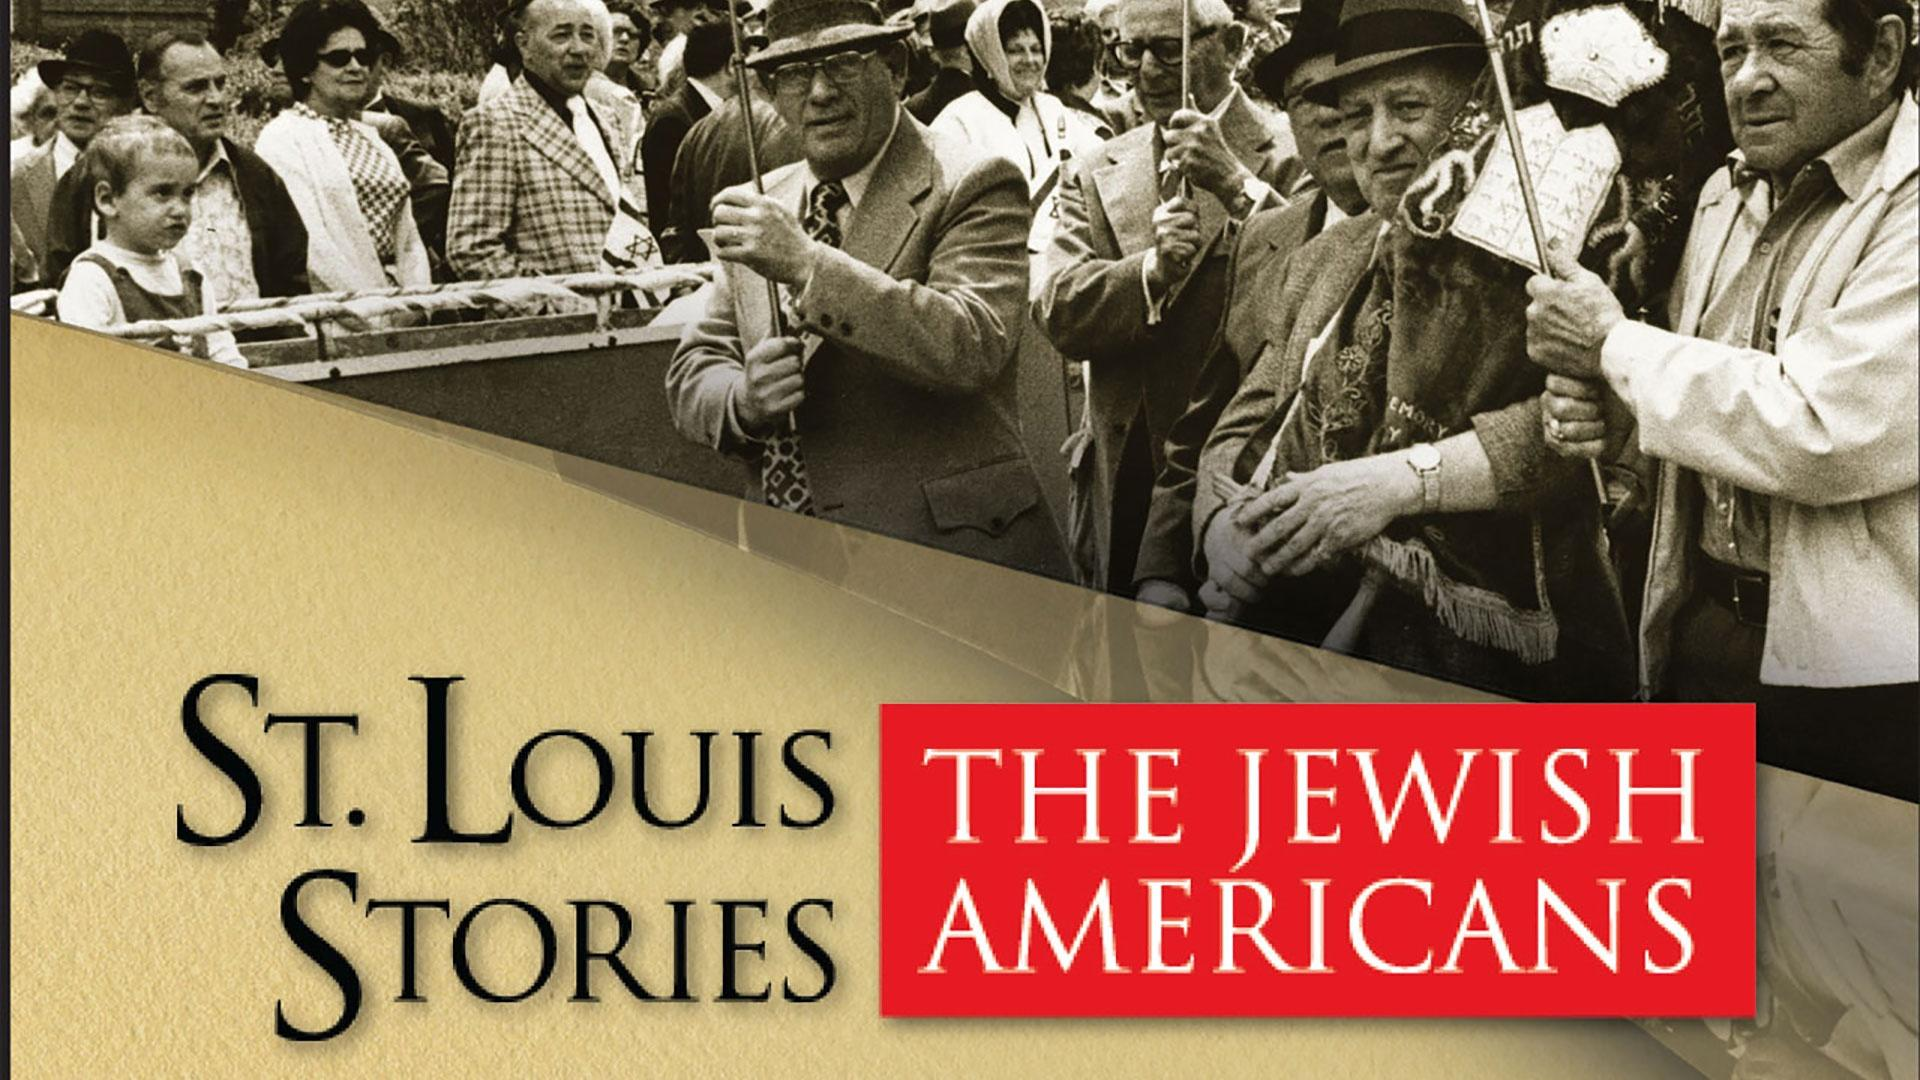 St. Louis Stories: The Jewish Americans